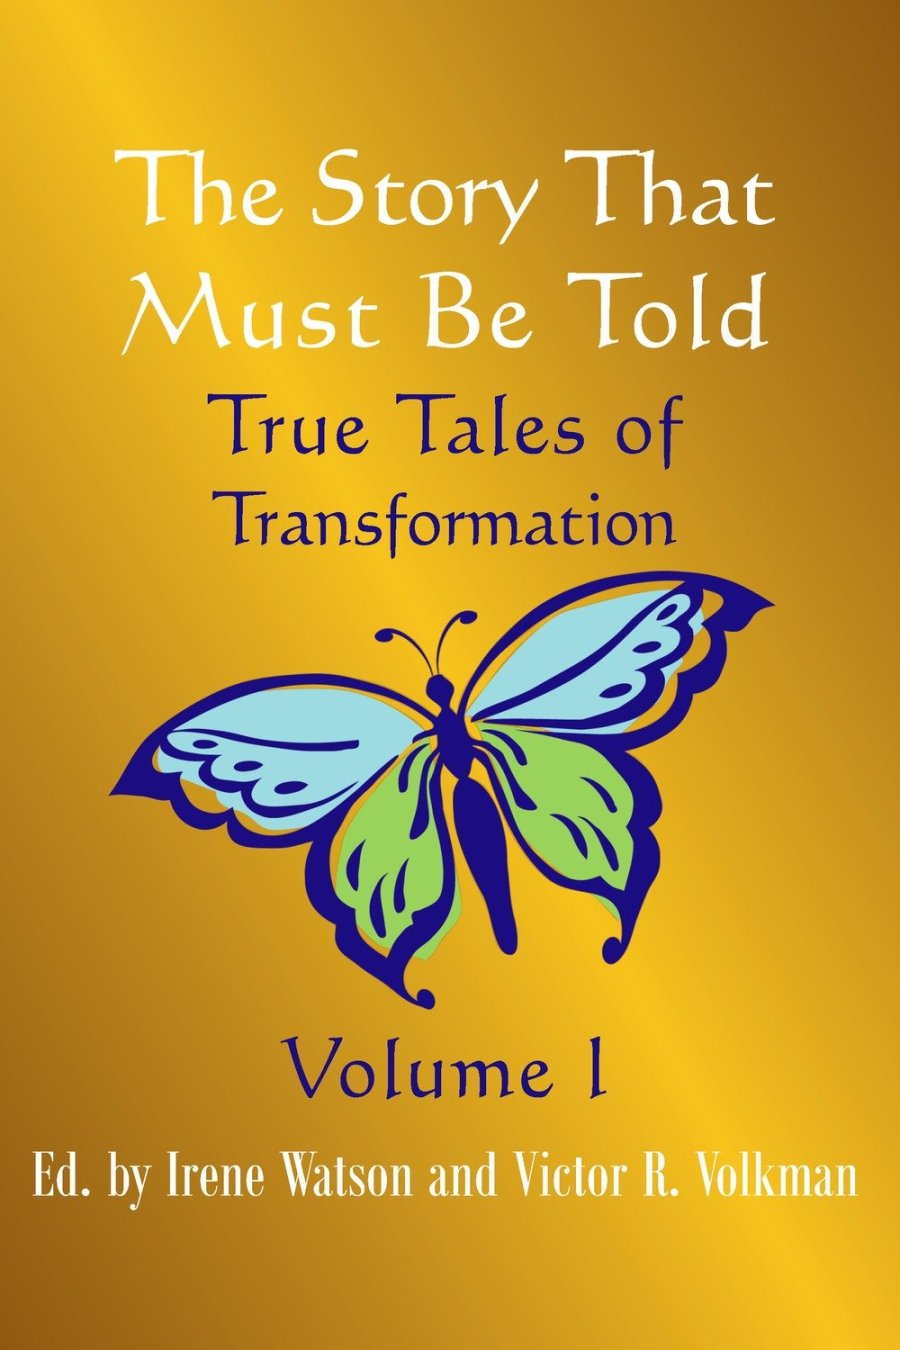 The Story That Must Be Told: True Tales of Transformation